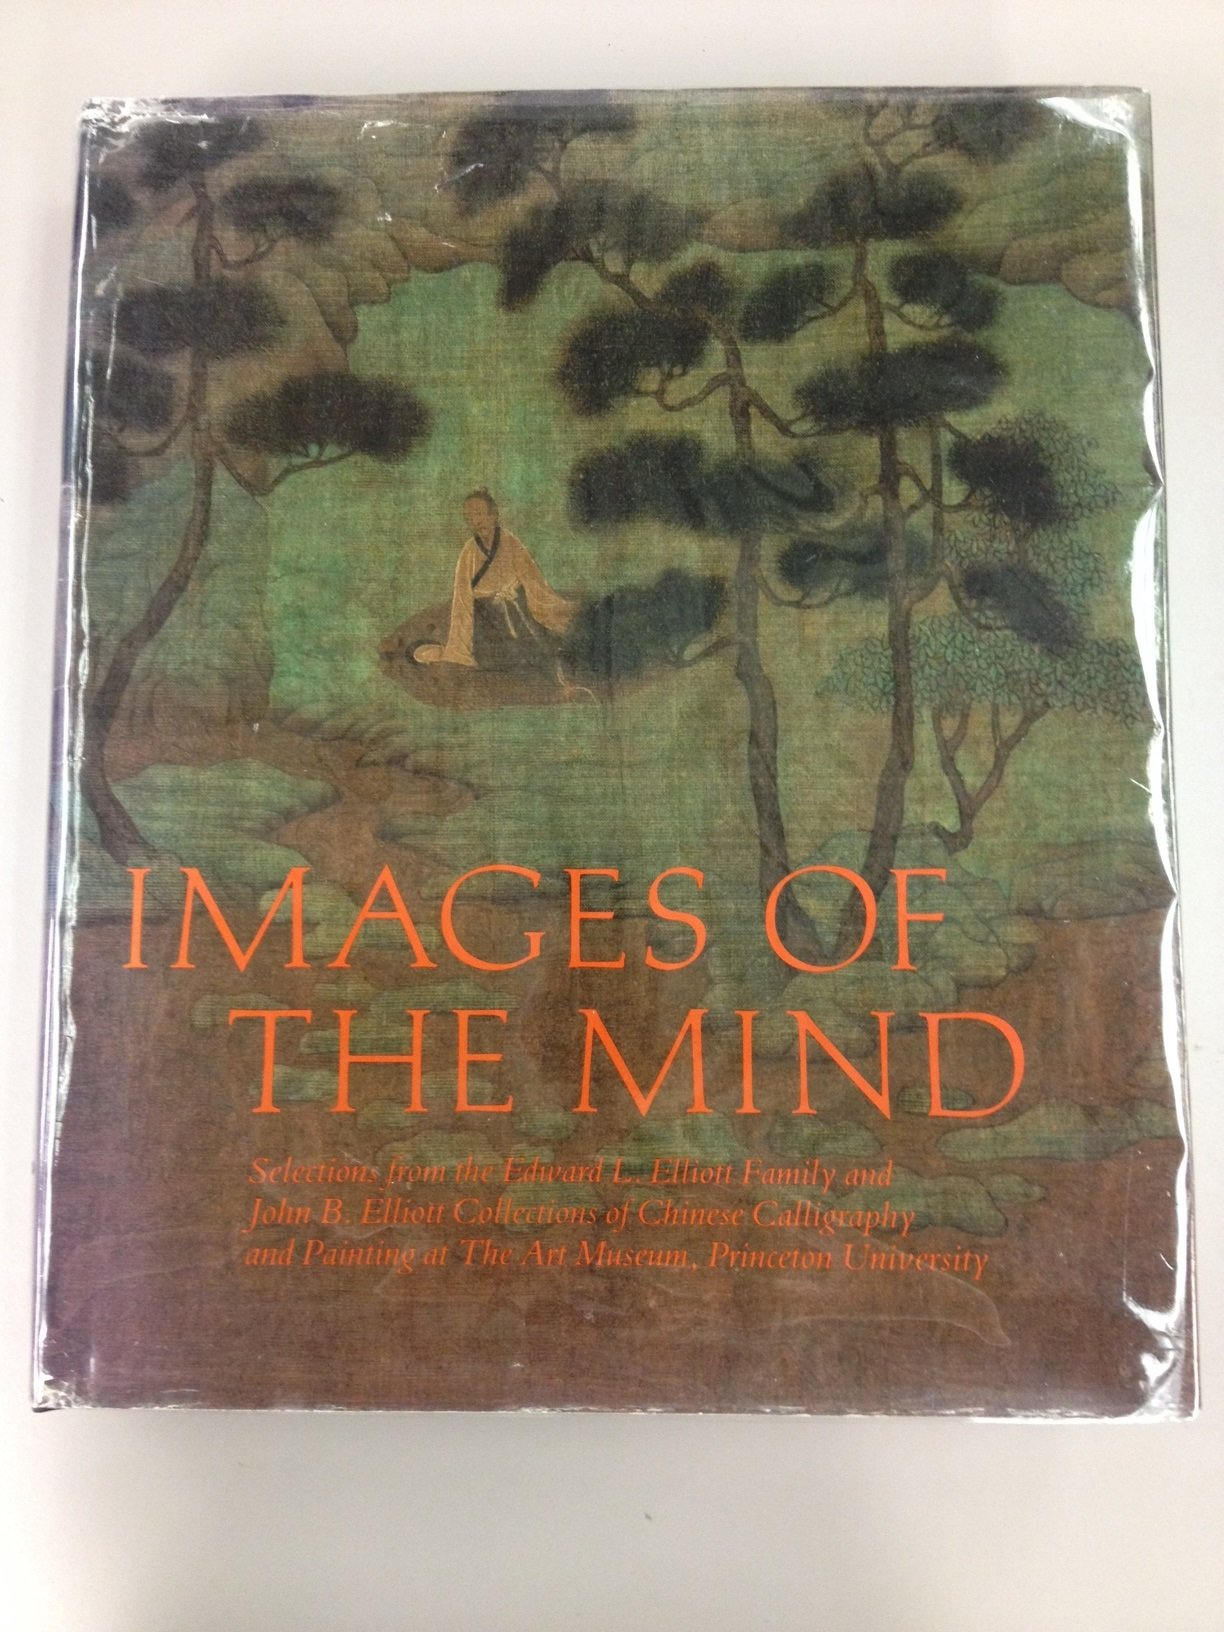 Images of the Mind: Selections from the Edward L. Elliott Family and John B. Elliott Collections of Chinese Calligraphy